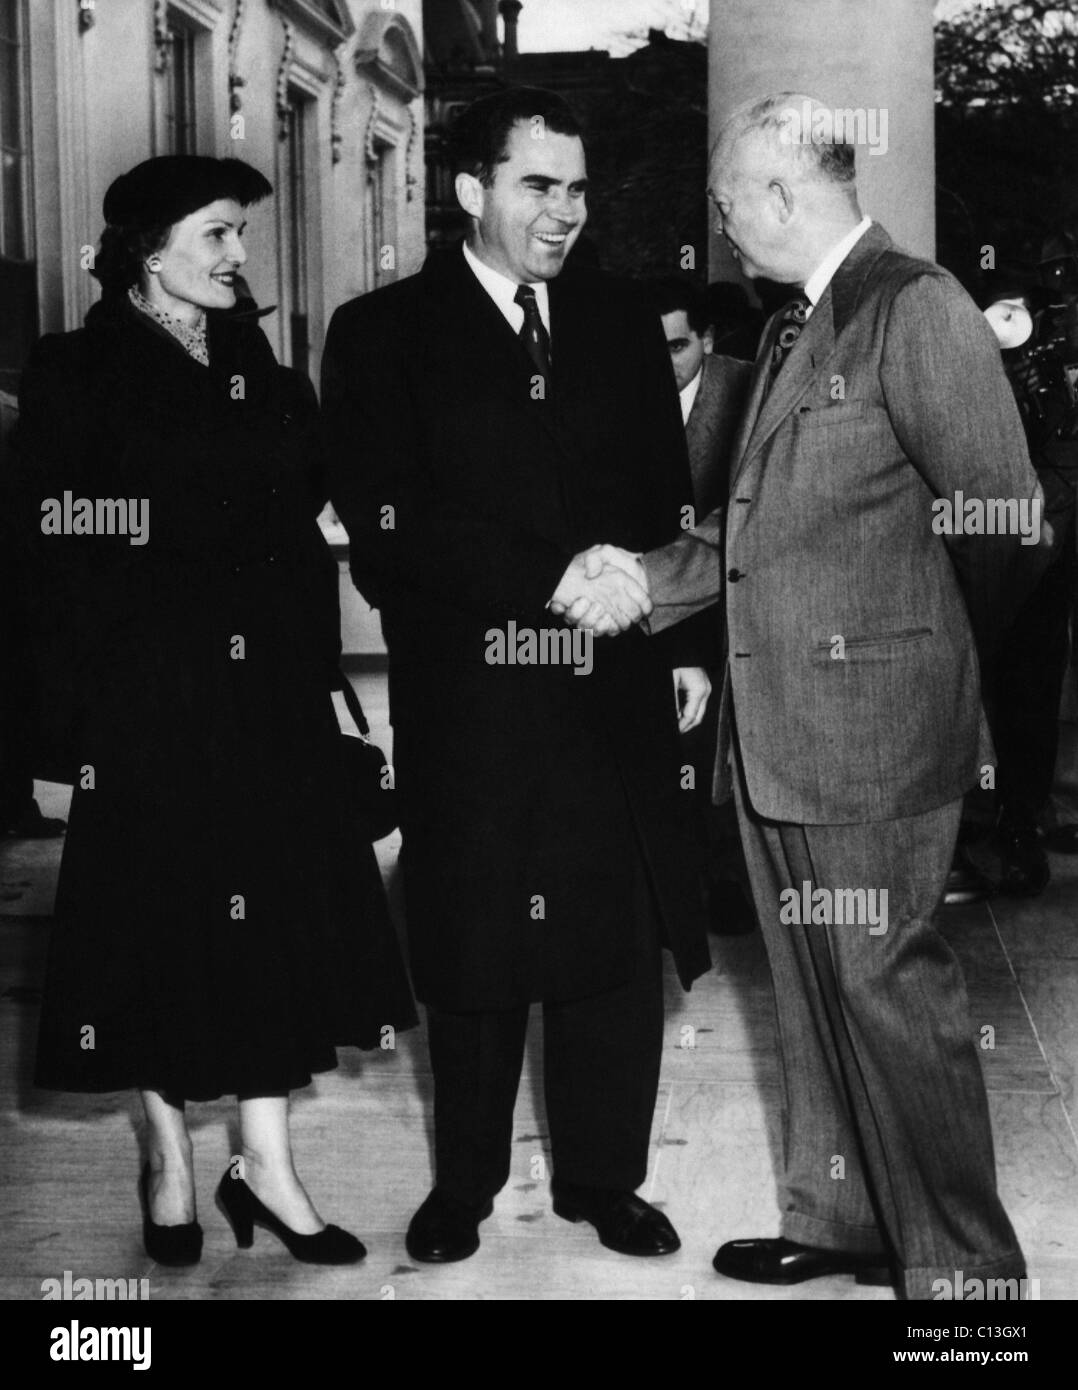 1954 US Presidency. US President Dwight Eisenhower greets Vice President (and future US President) Richard Nixon - Stock Image